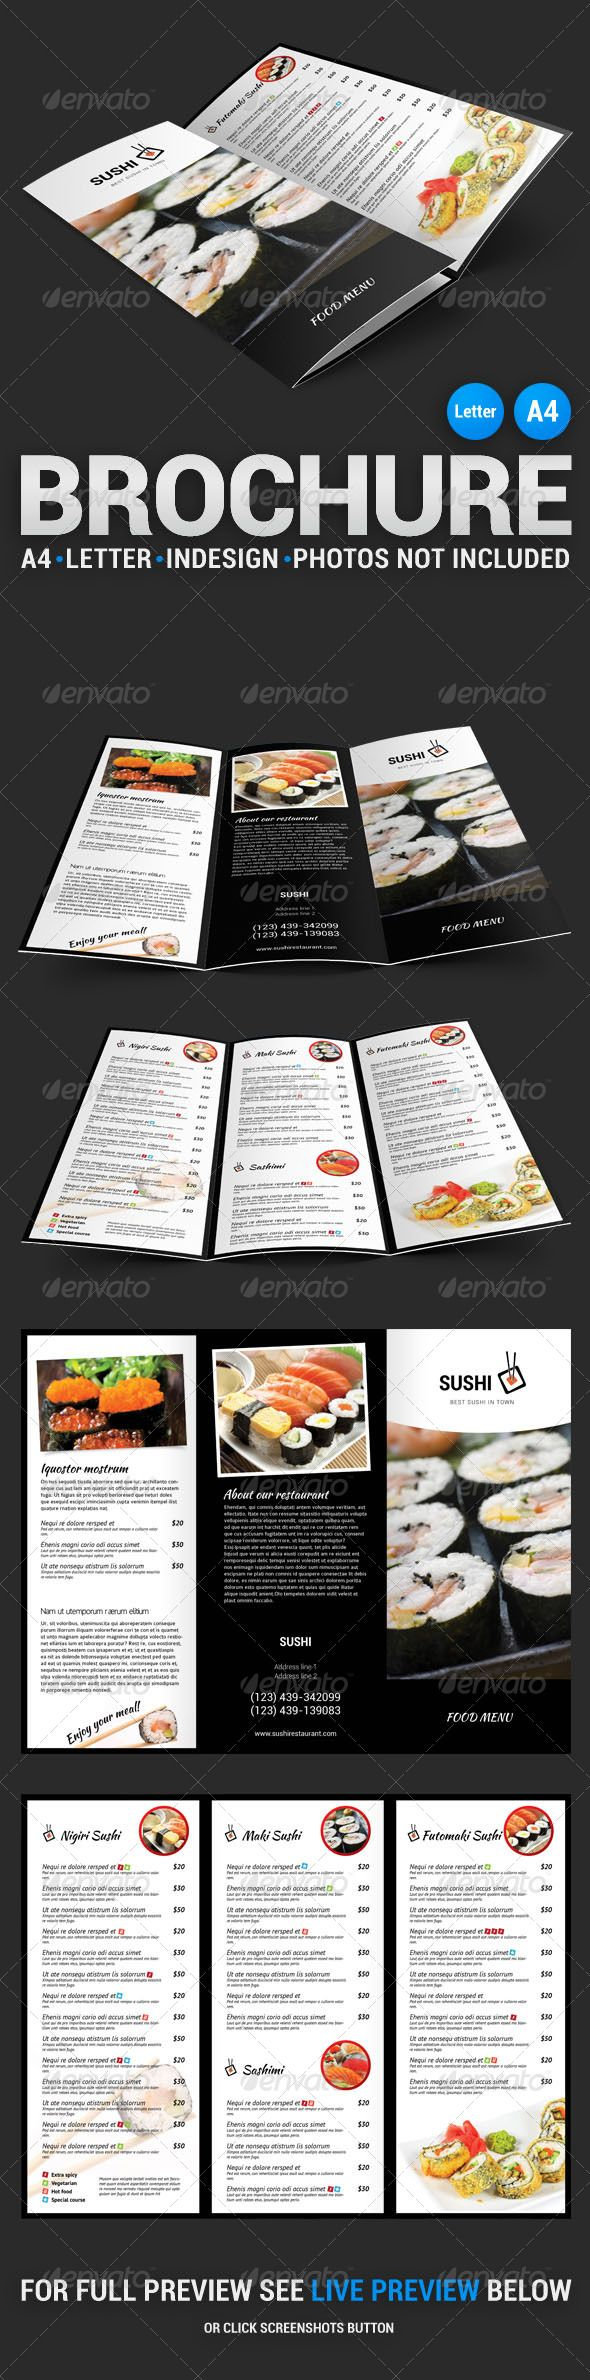 Sushi Menu Tri-Fold Brochure #template #layout